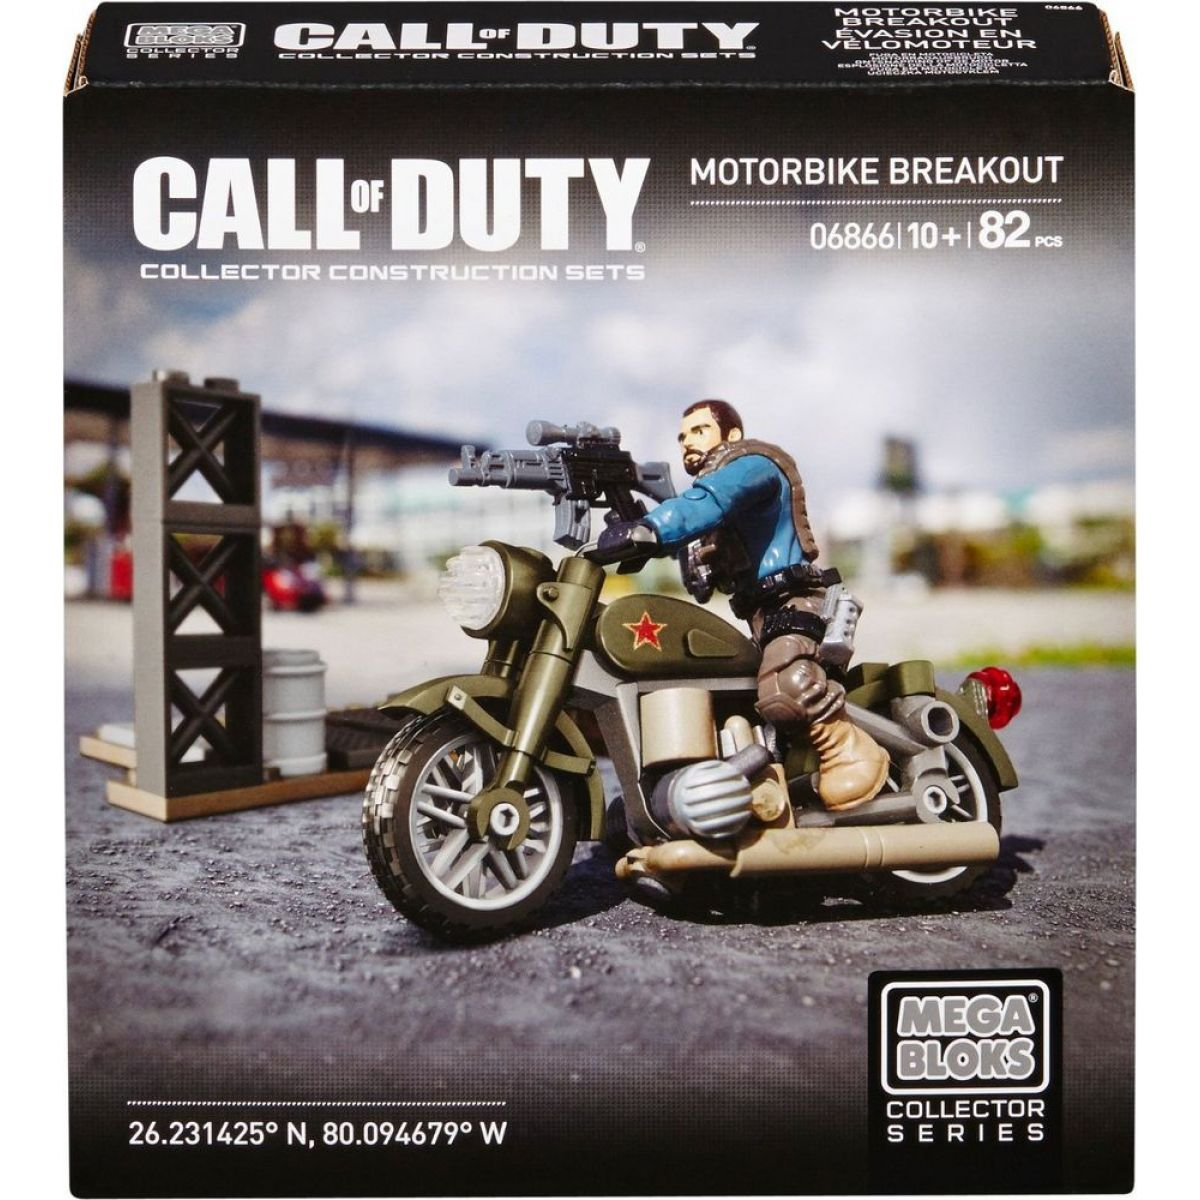 Megabloks Micro Call of Duty útok - Motorbike Breakout